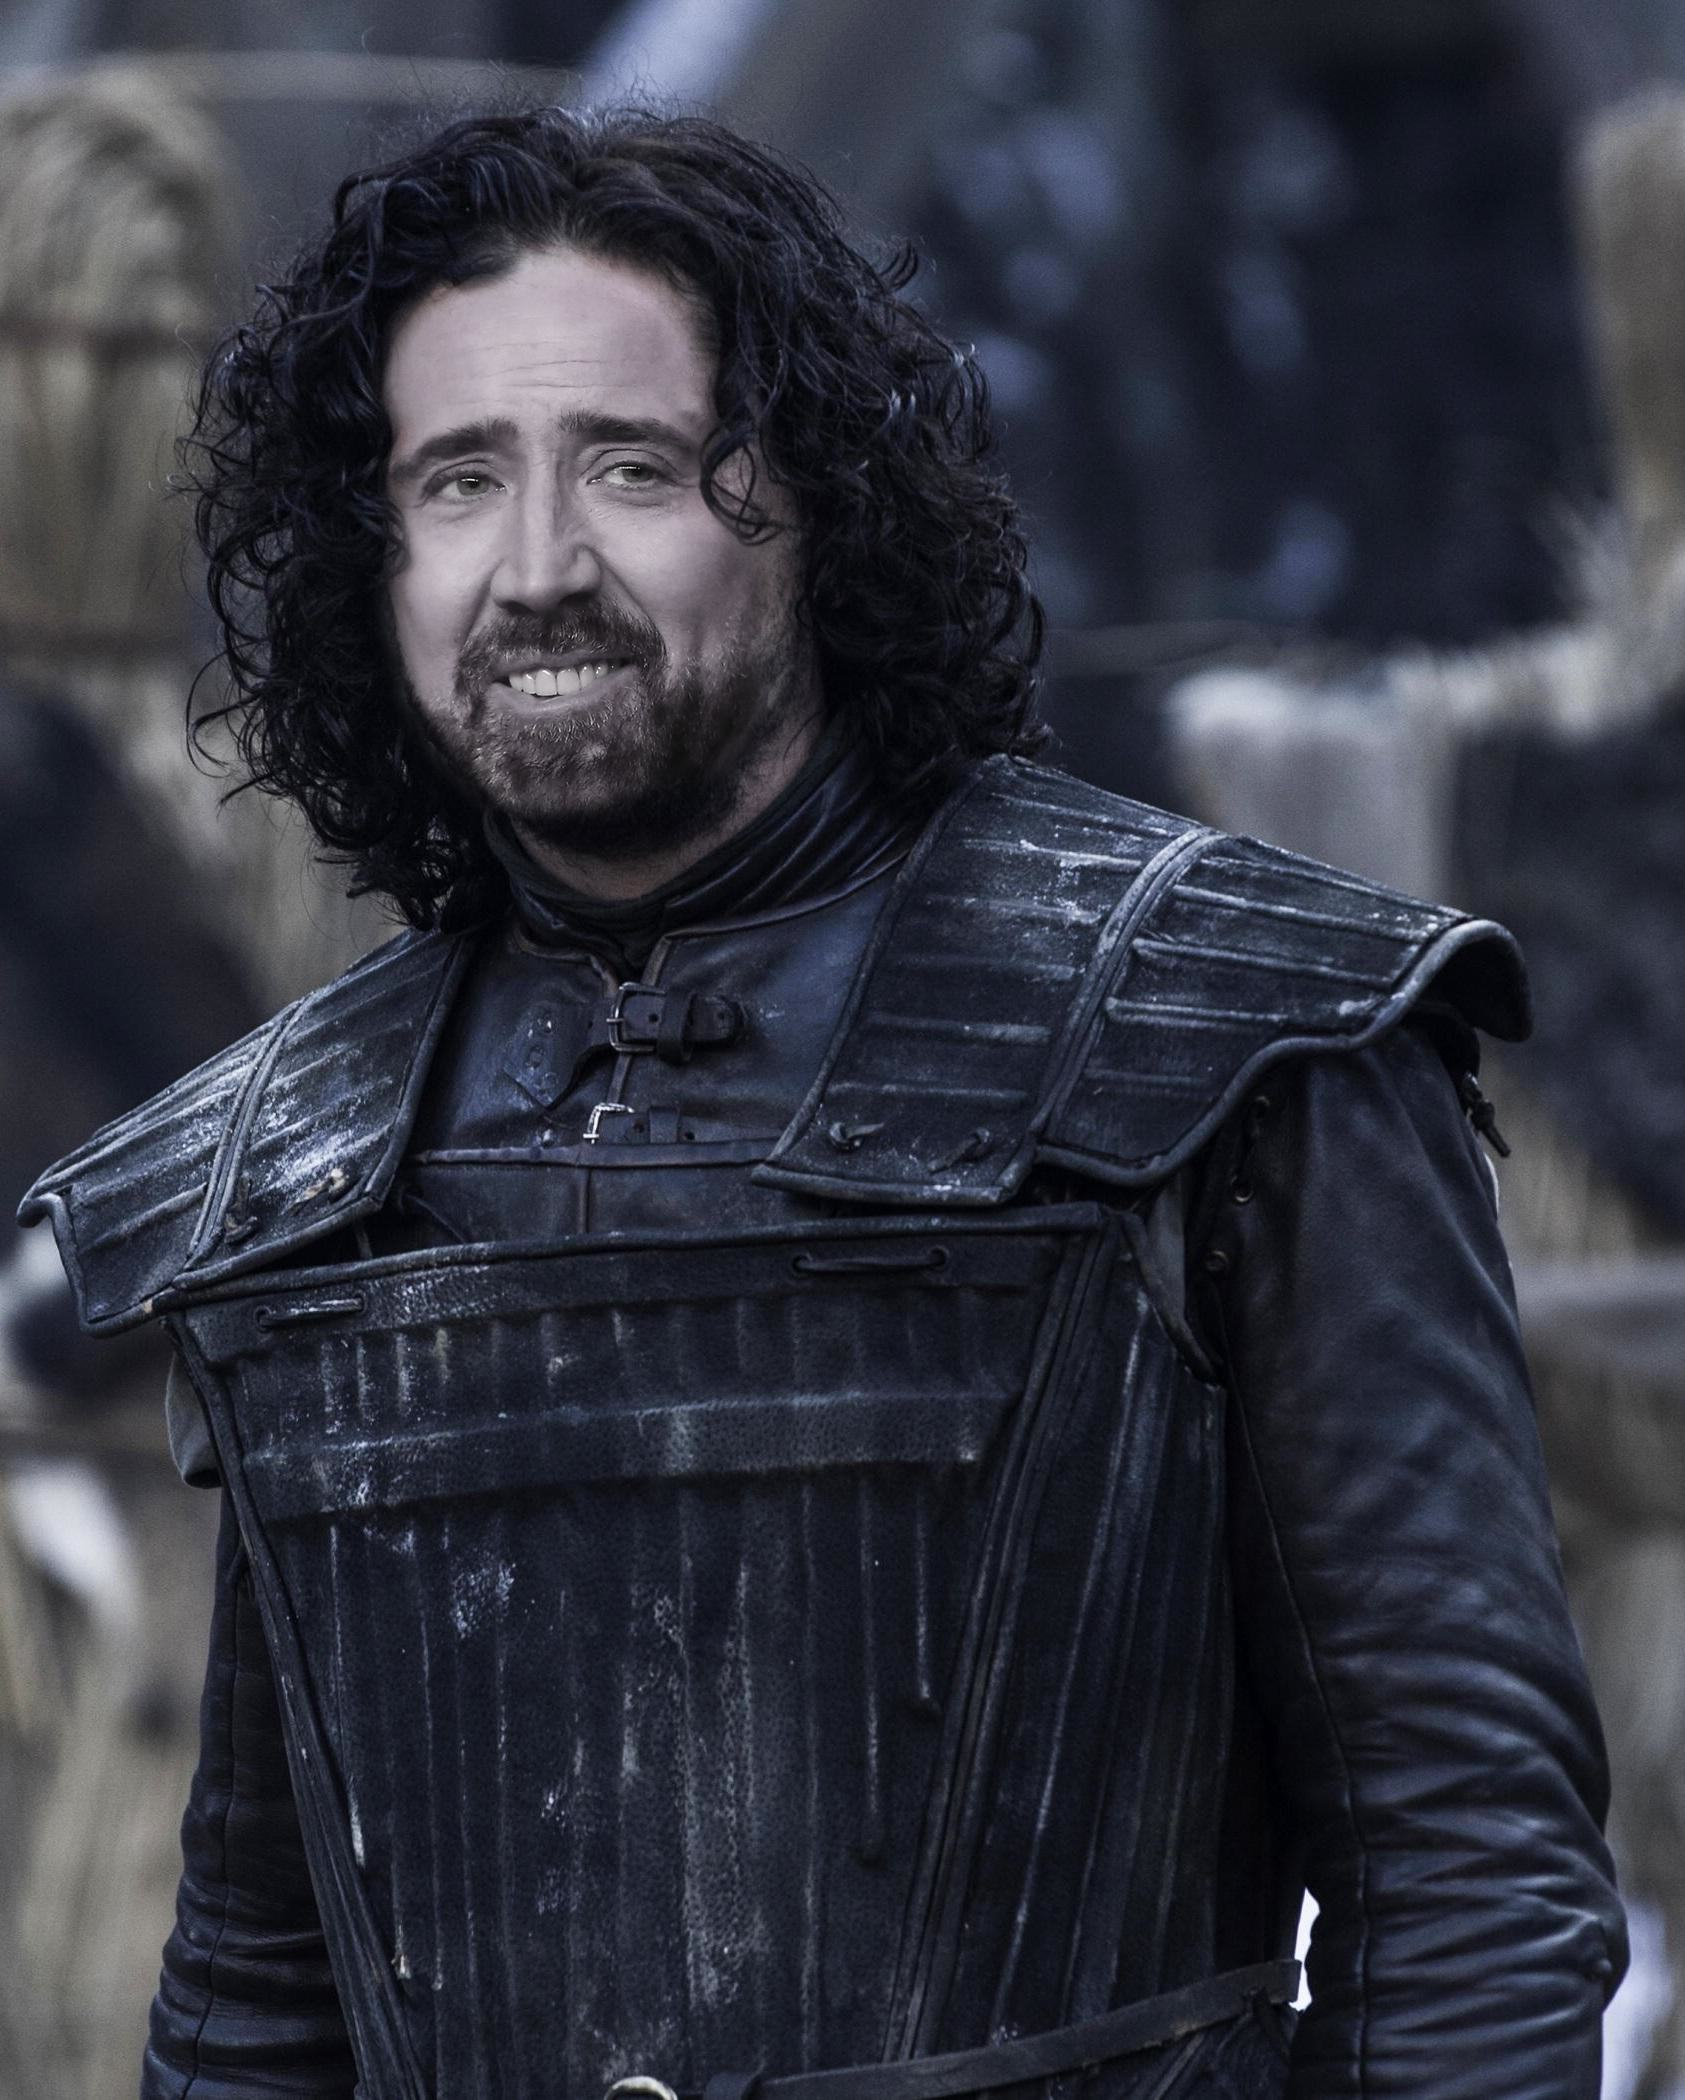 Nicolas Cage As Every Game Of Thrones Character Is Glorious cage of thrones 3